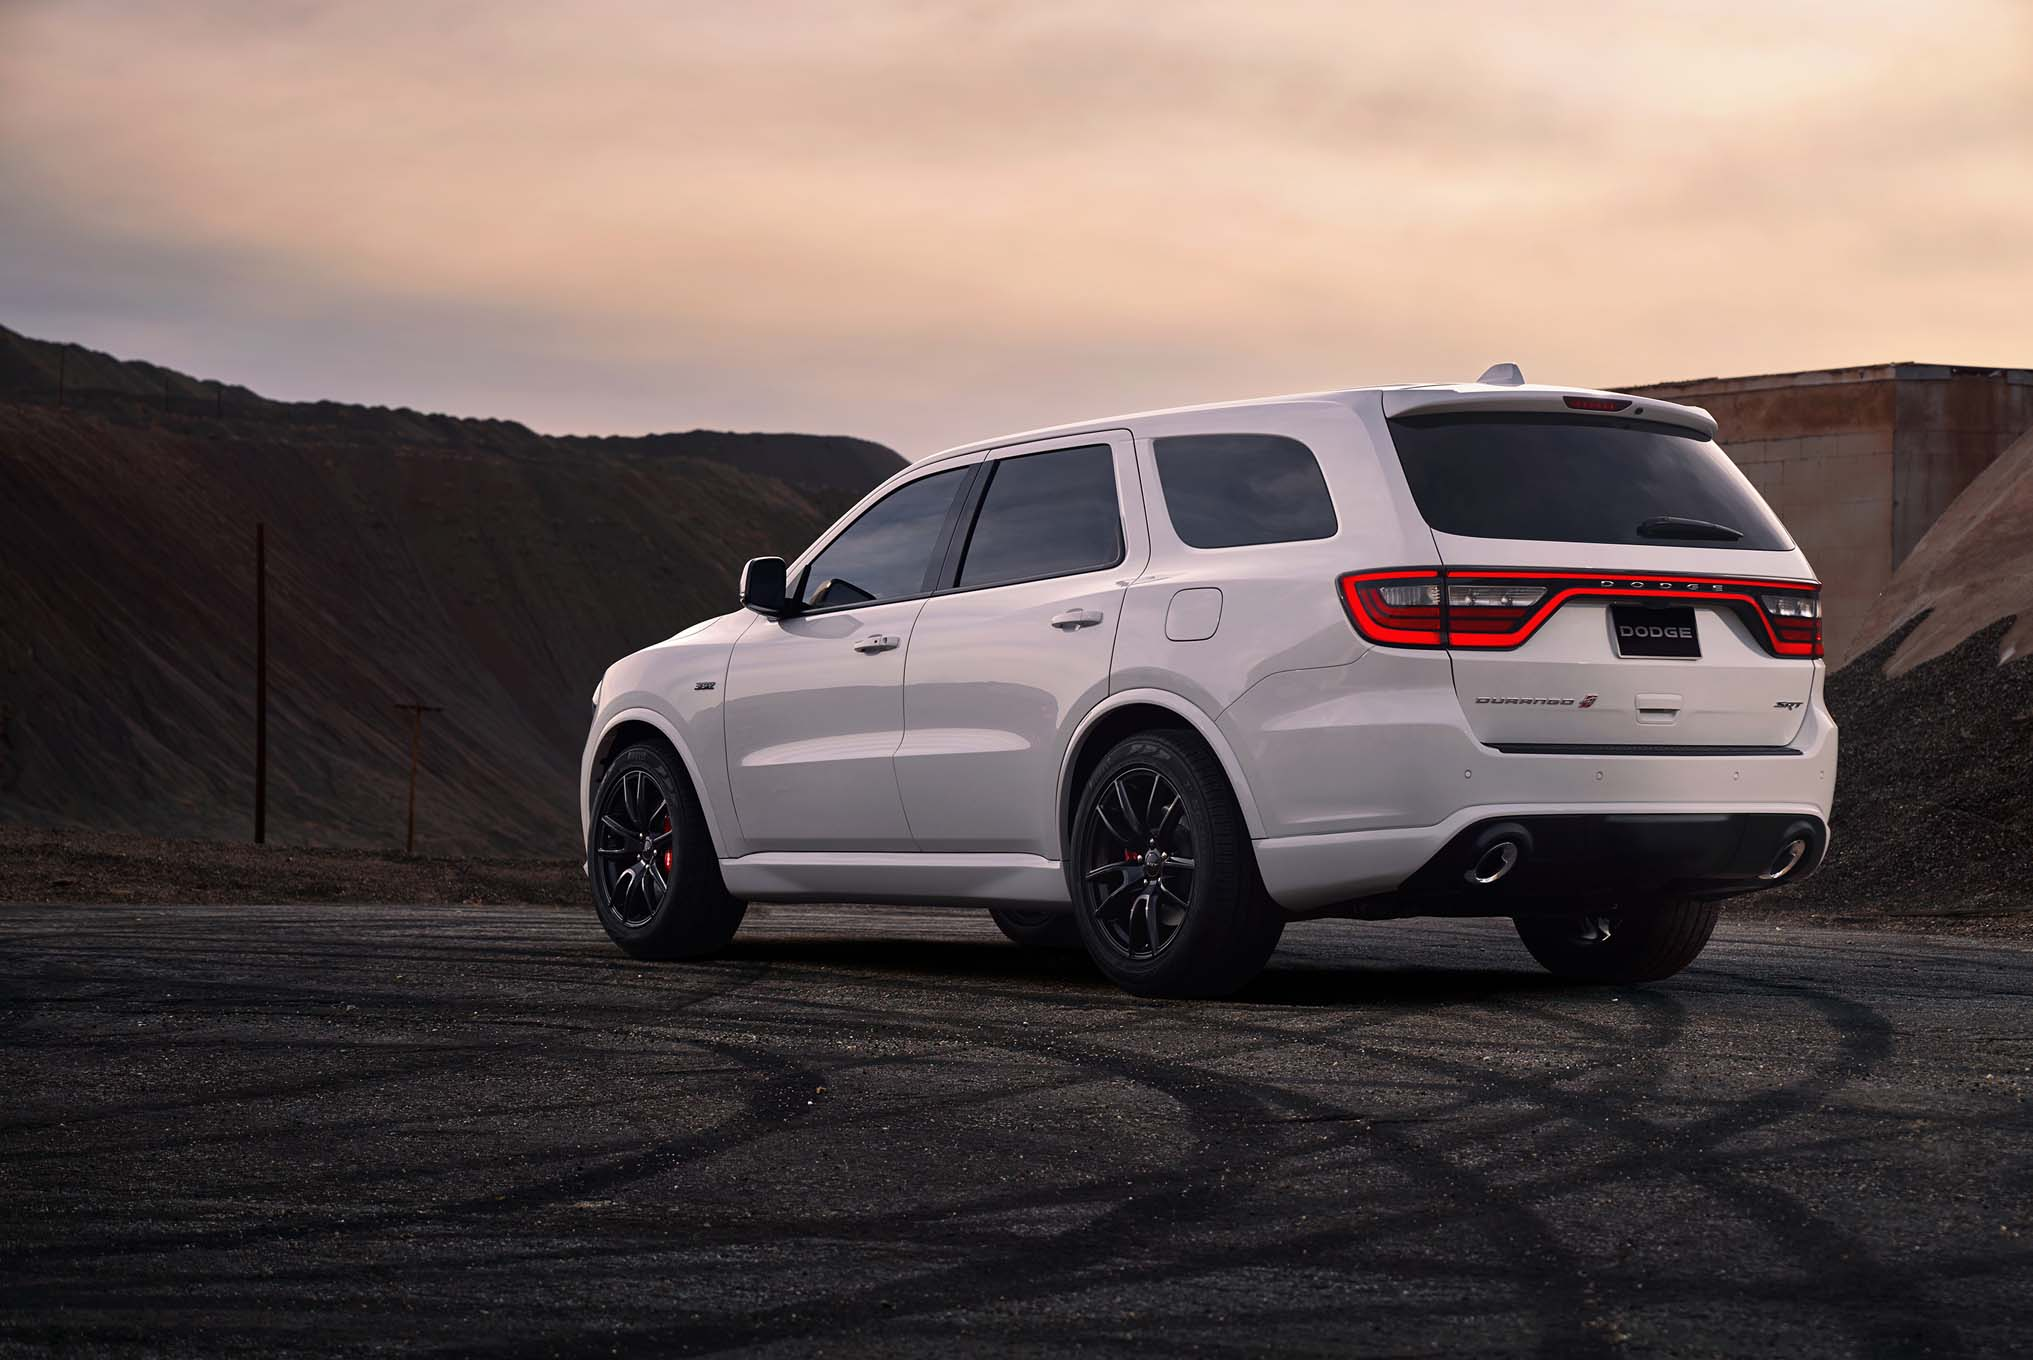 2017 Dodge Charger Srt >> 2018 Dodge Durango SRT Pricing Announced | Automobile Magazine